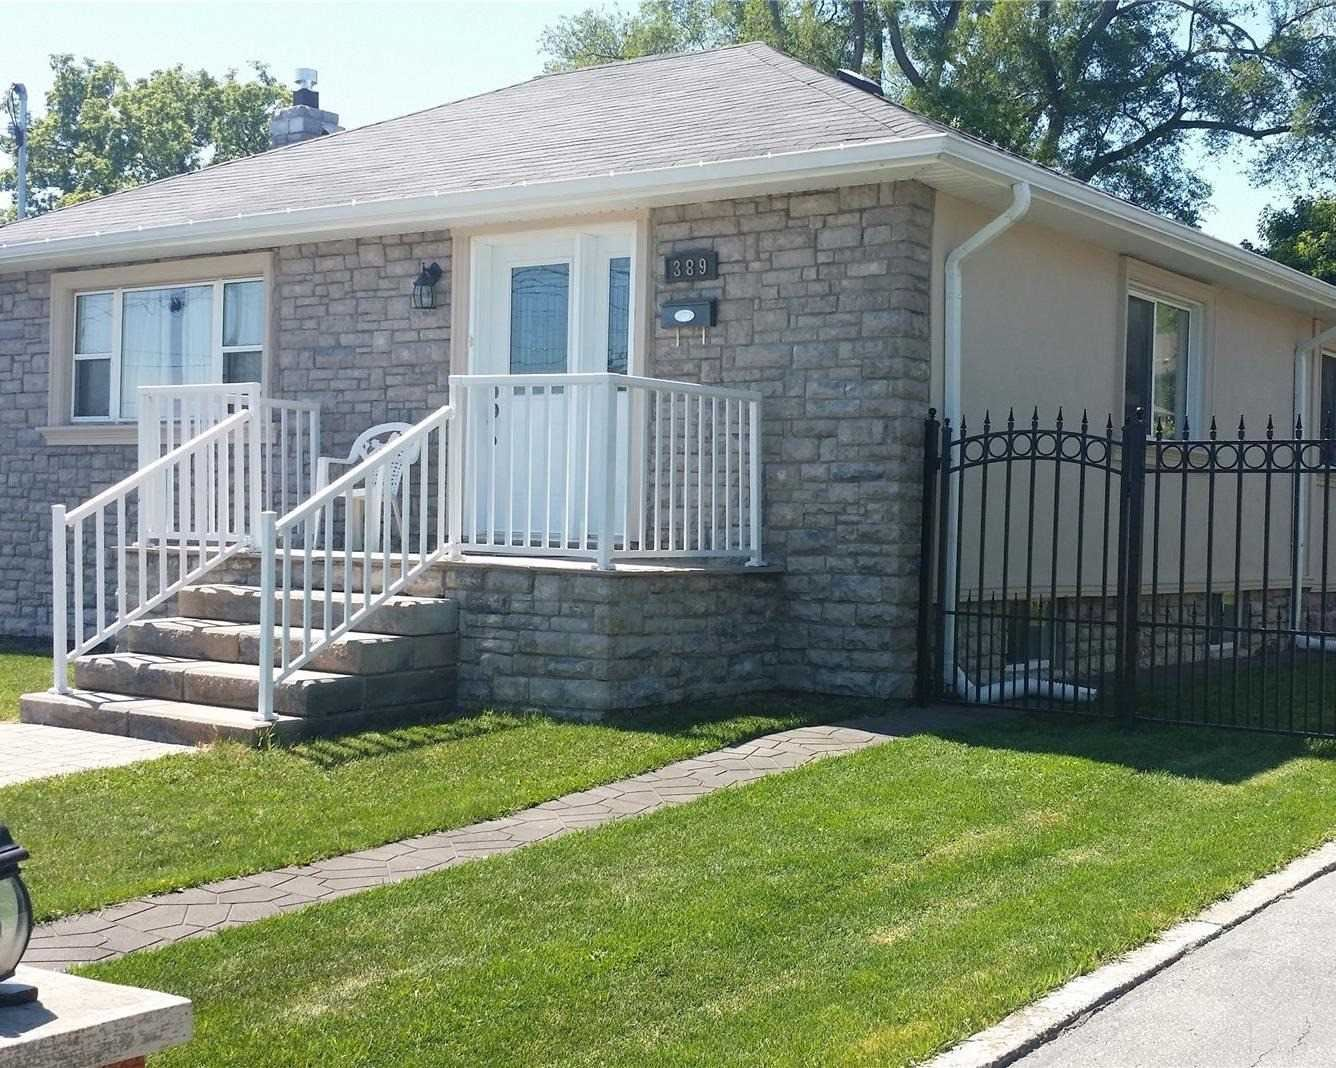 389 Marf Ave, Mississauga, ON L5G1T2 - MLS#: W5329412